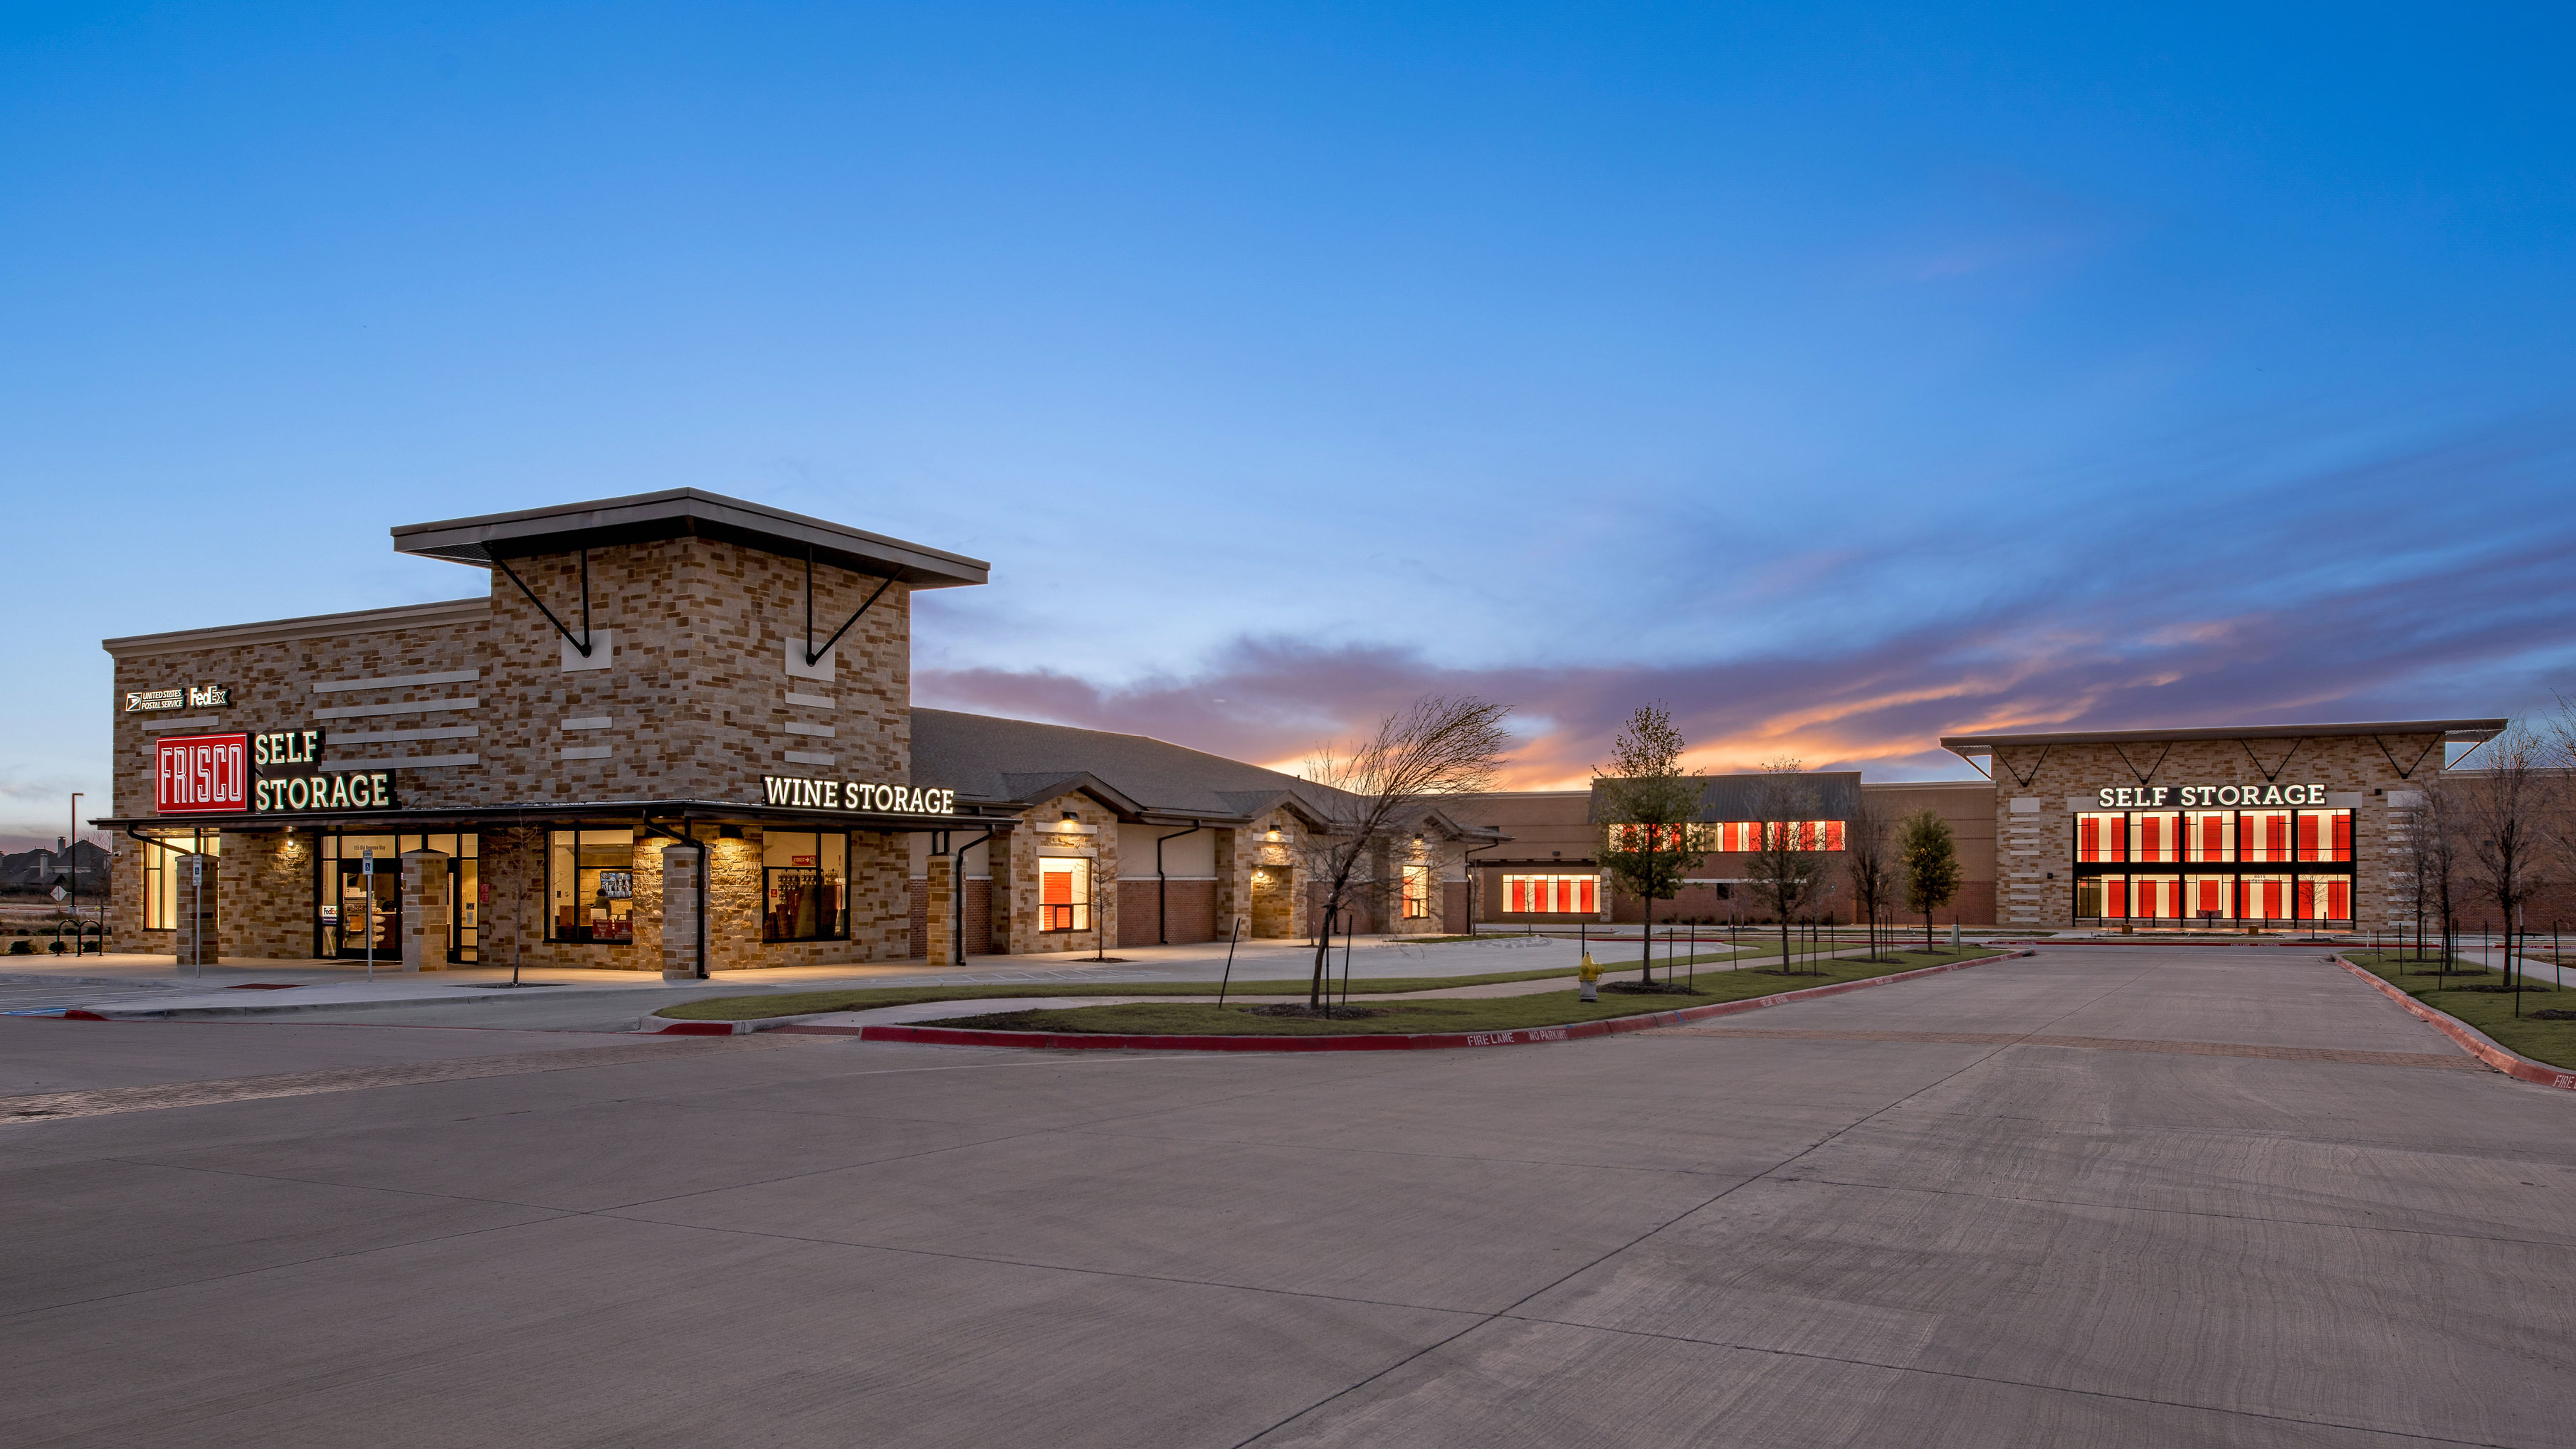 Arco Murray Completes Self Storage Facility For The